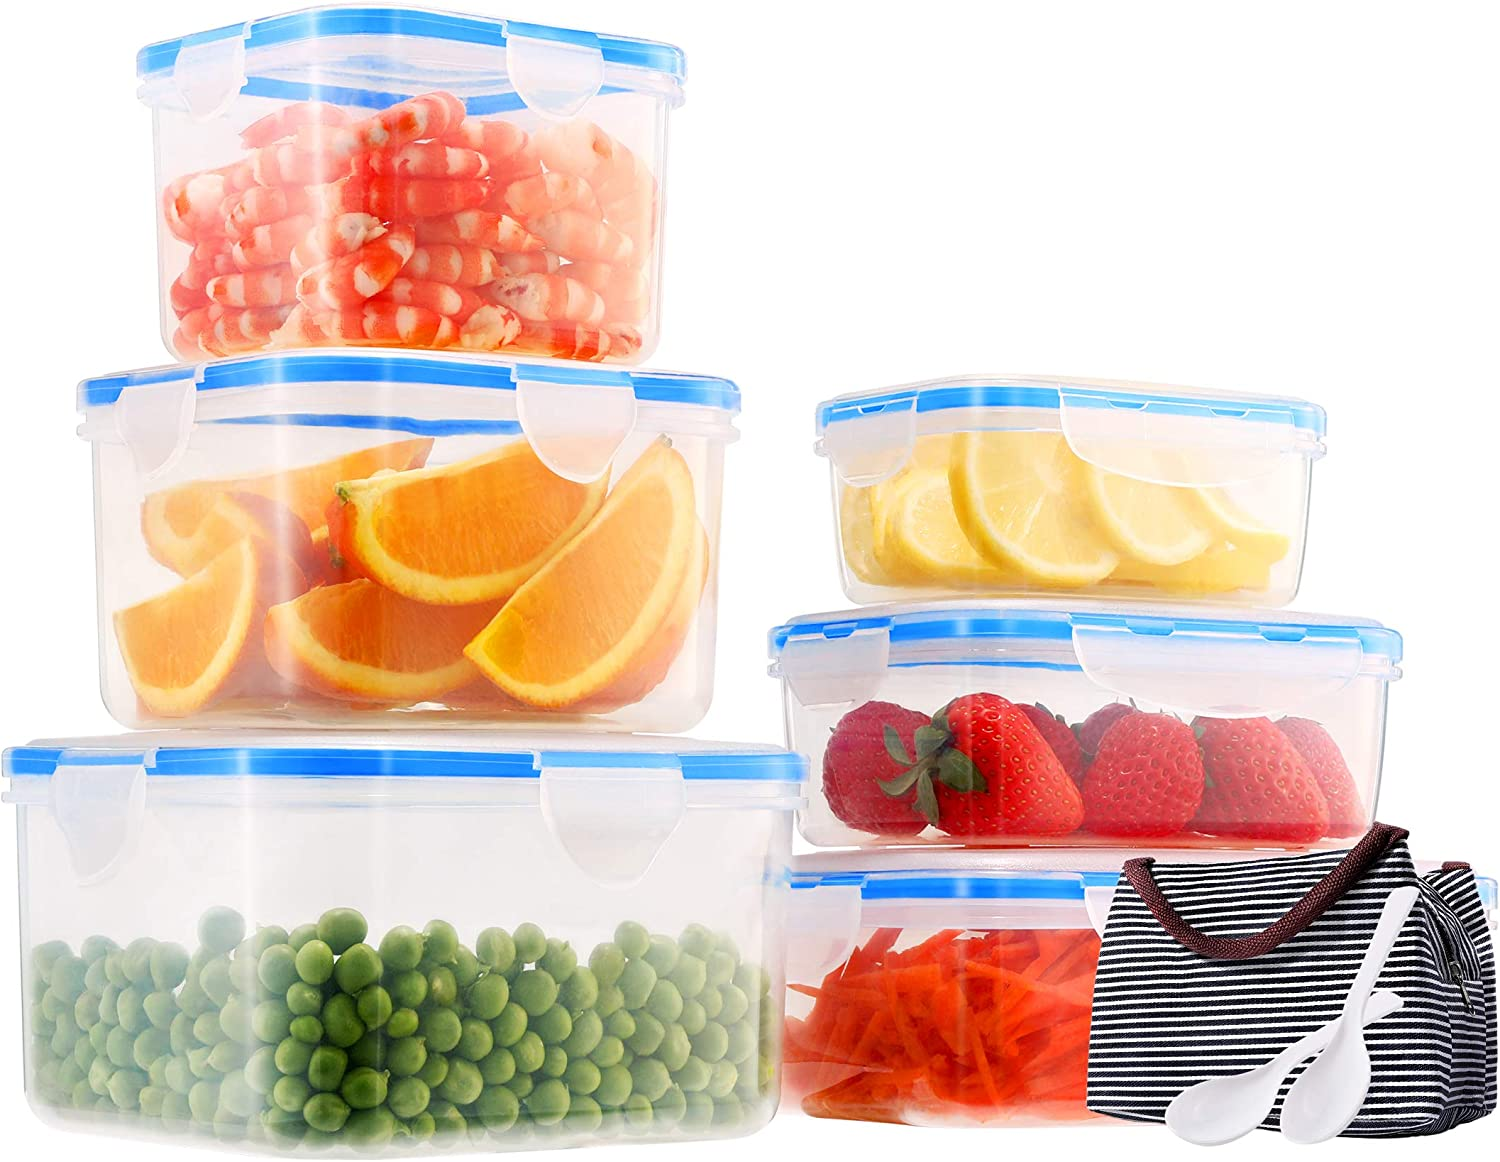 Food Storage Containers Set with Lids, 6 Pack Airtight Plastic Containers for Food Storage BPA Free Leakproof Meal Prep Containers with Lunch Bag and Spoons, Microwave, Freezer, Dishwasher Safe